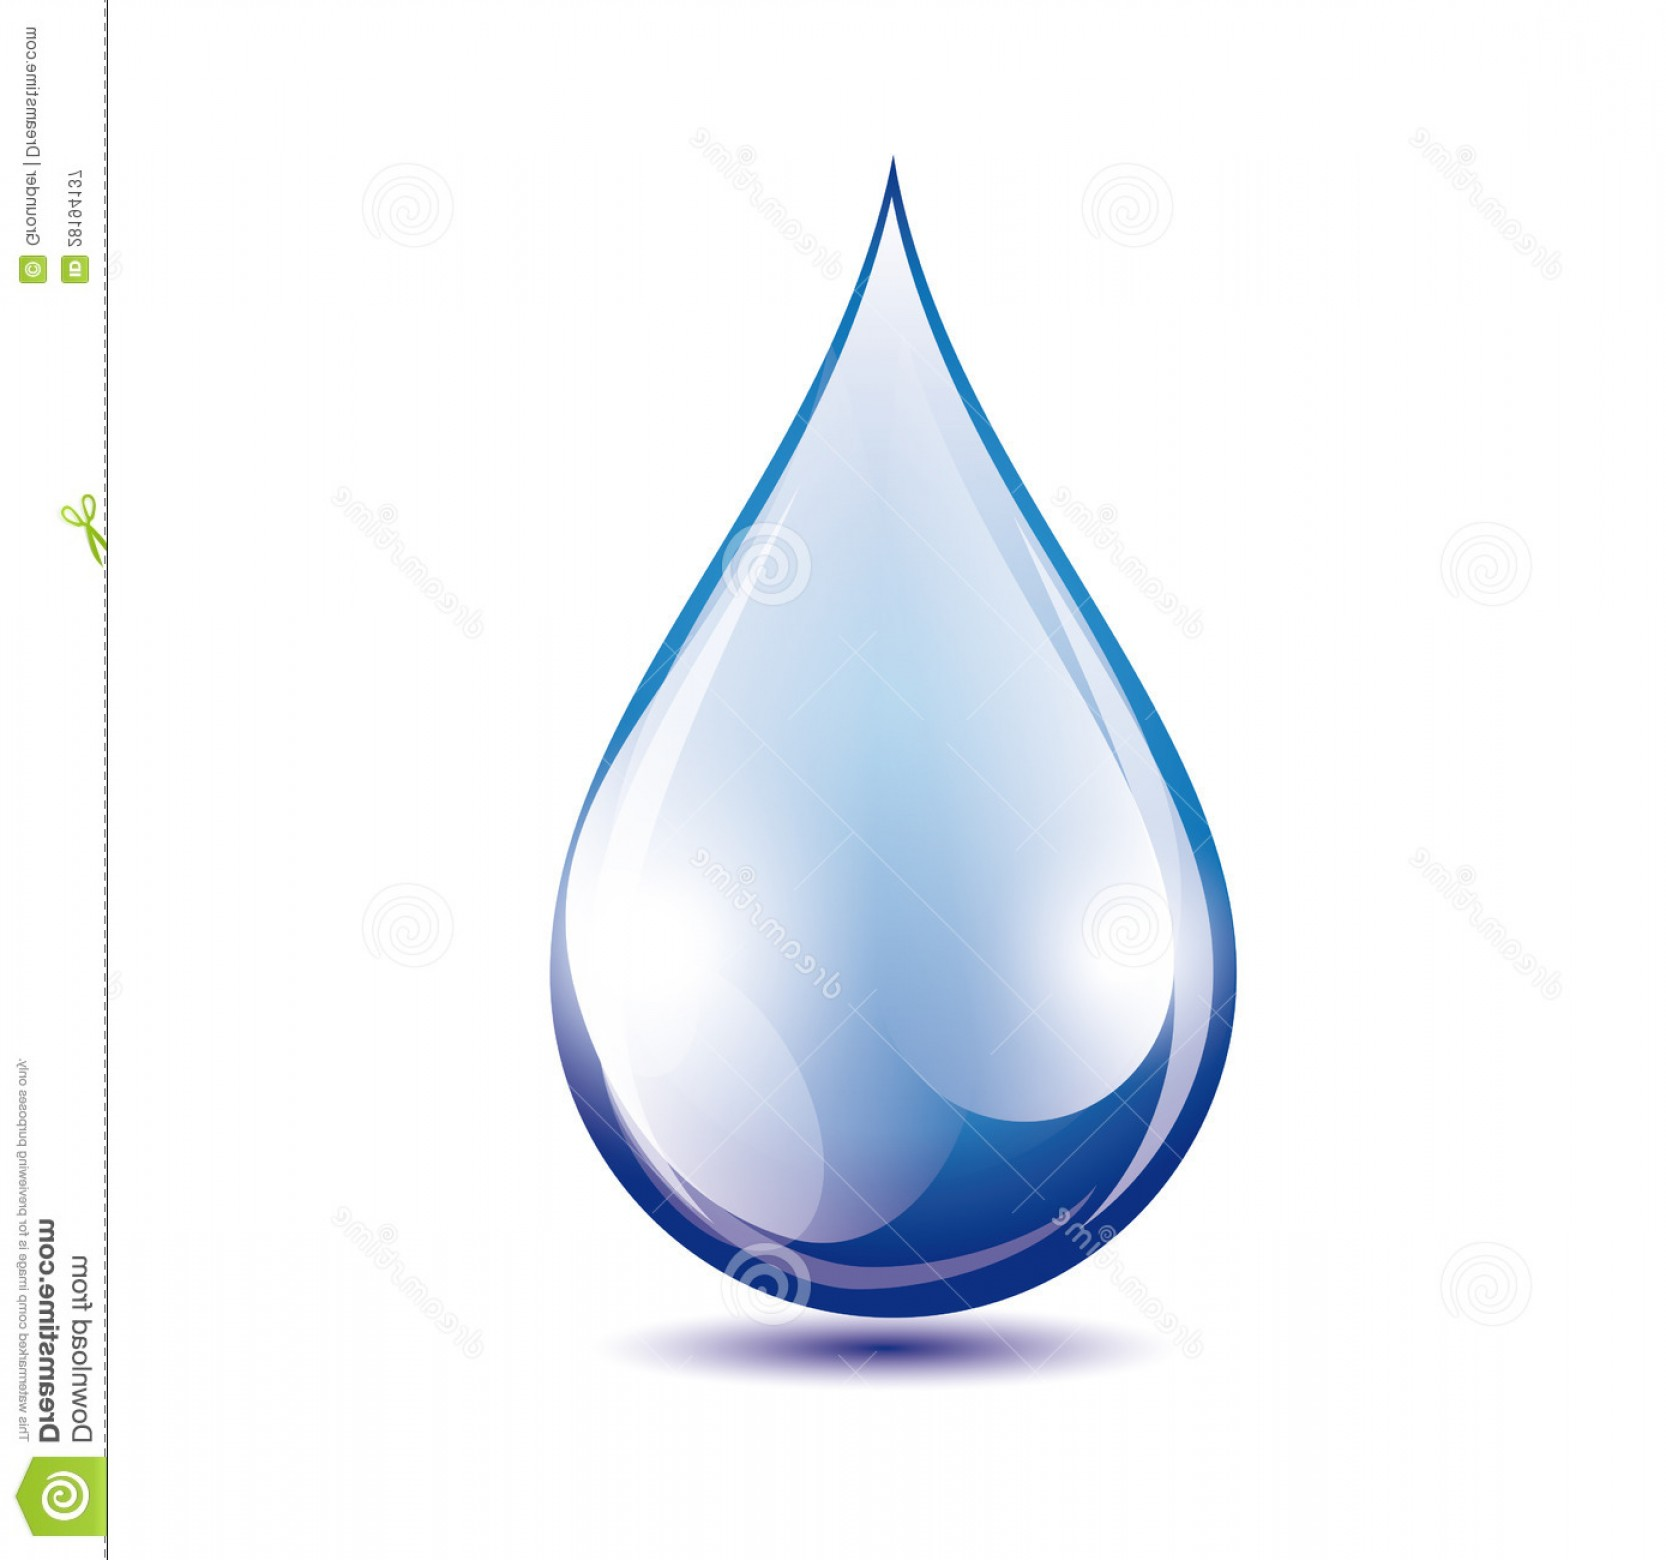 1666x1560 Royalty Free Stock Photography Water Drop Vector Image Shopatcloth